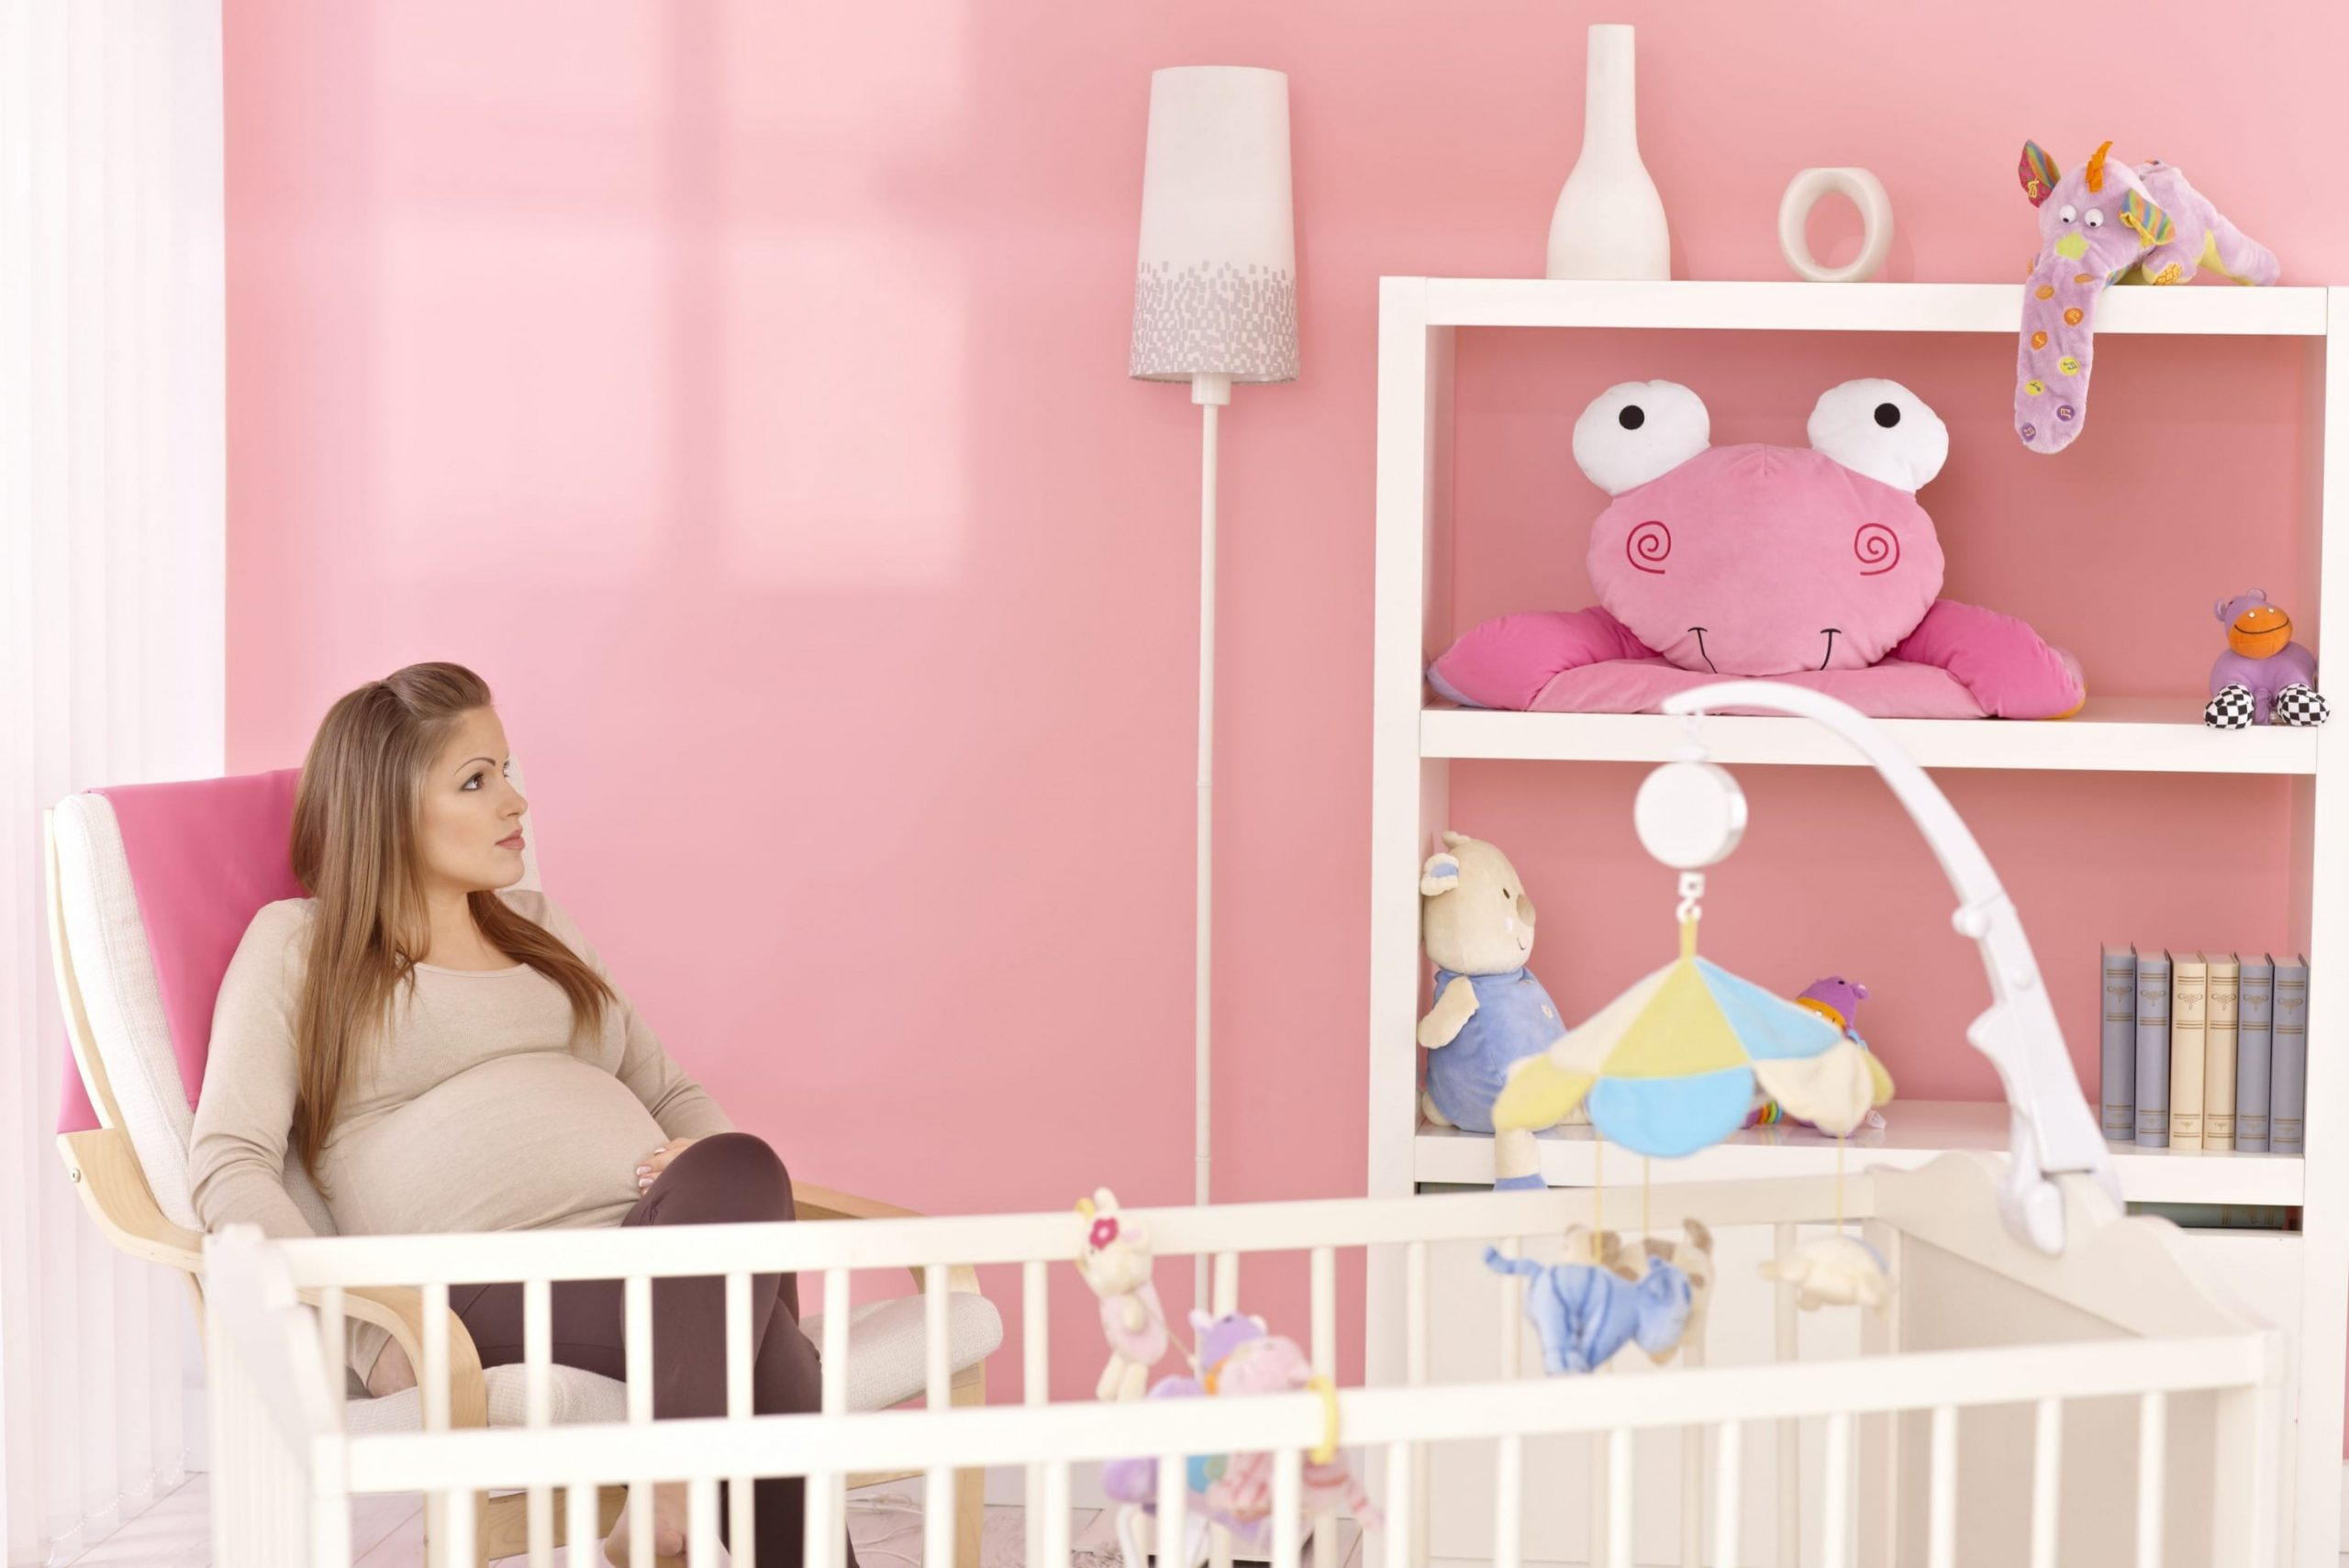 Baby Nursery Checklist: 10 Essential Items & 10 Things to Forget - Baby Room Essentials